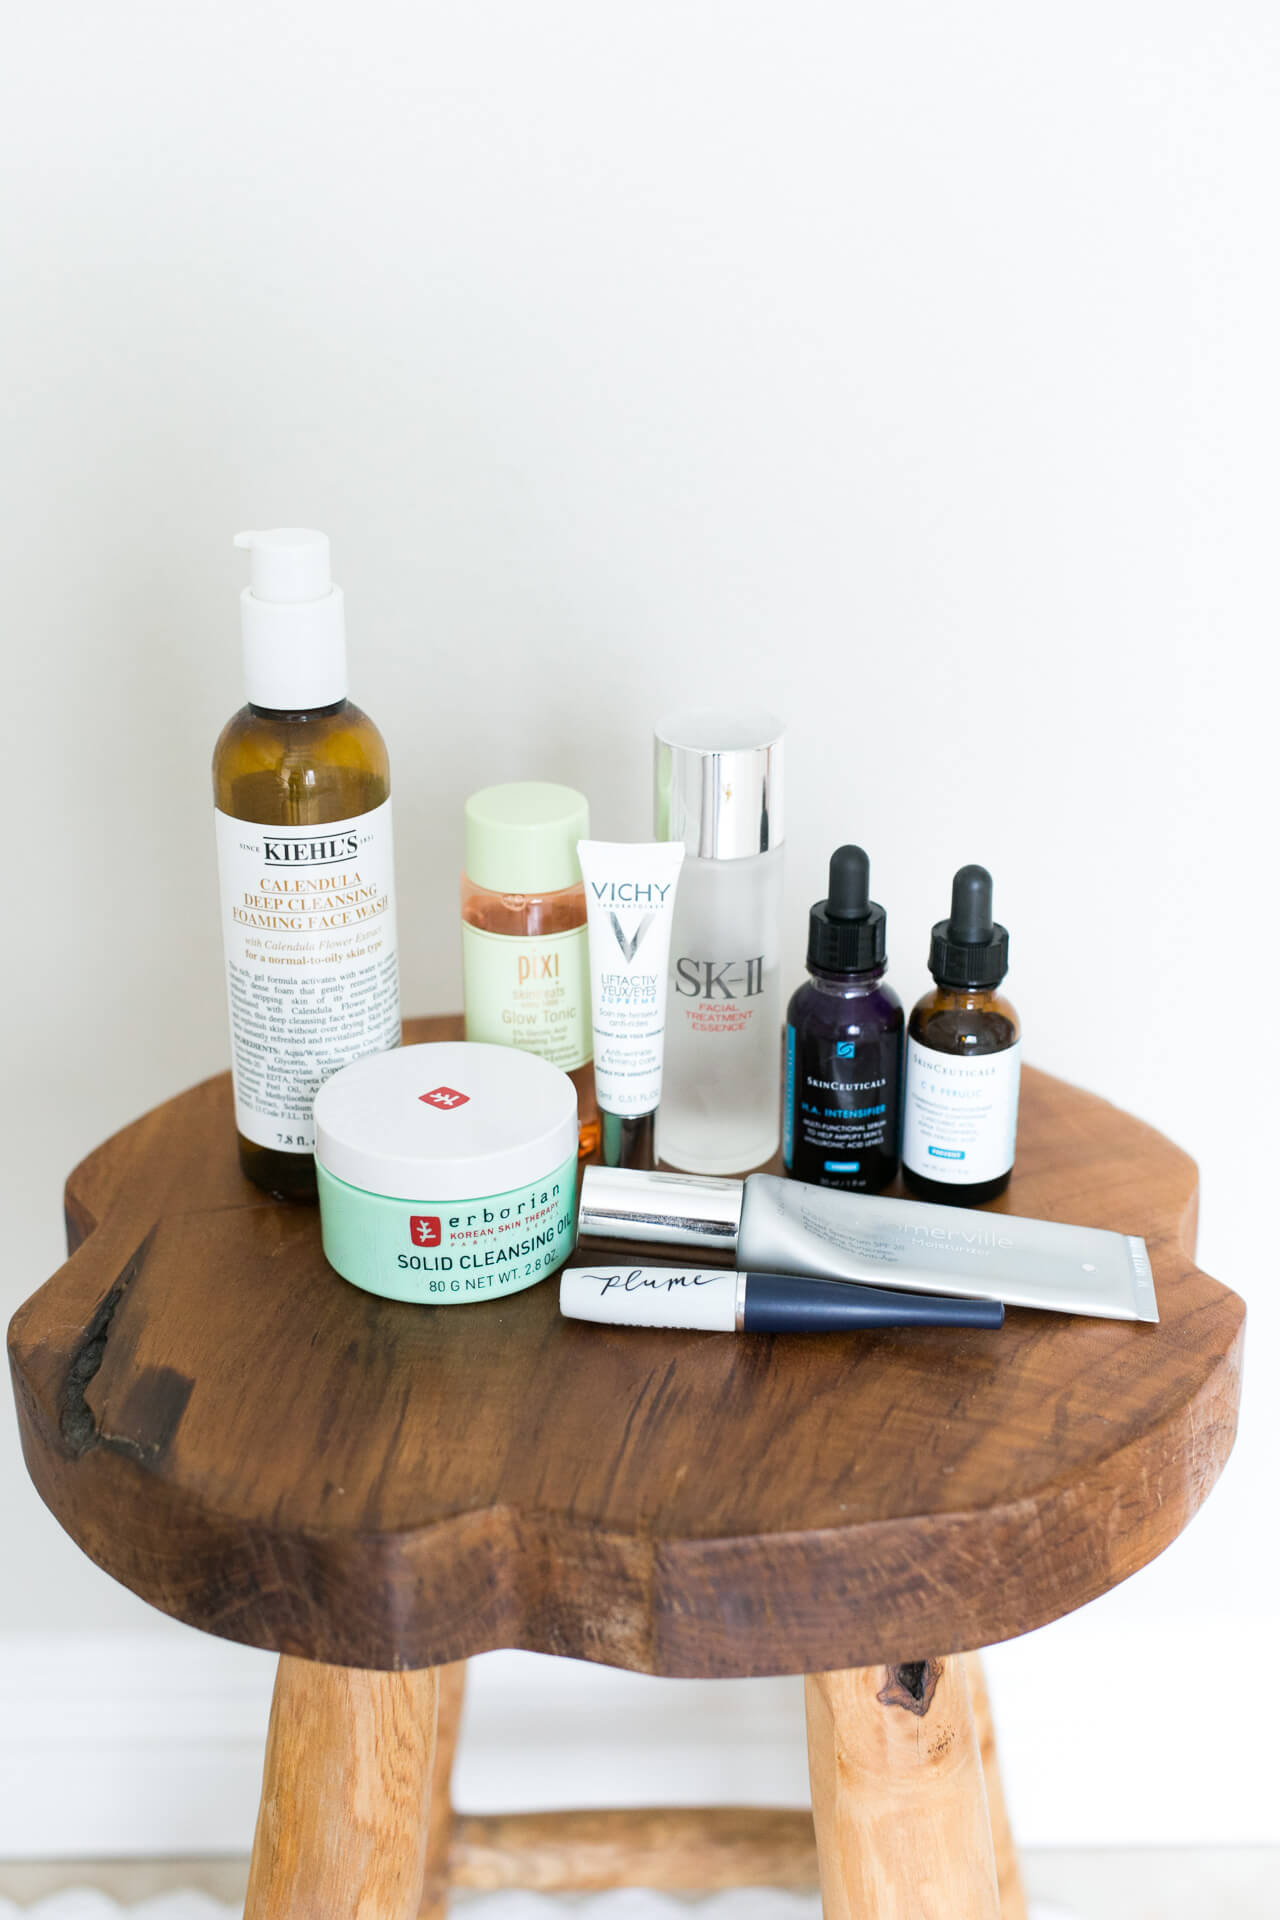 the products I use daily morning and night